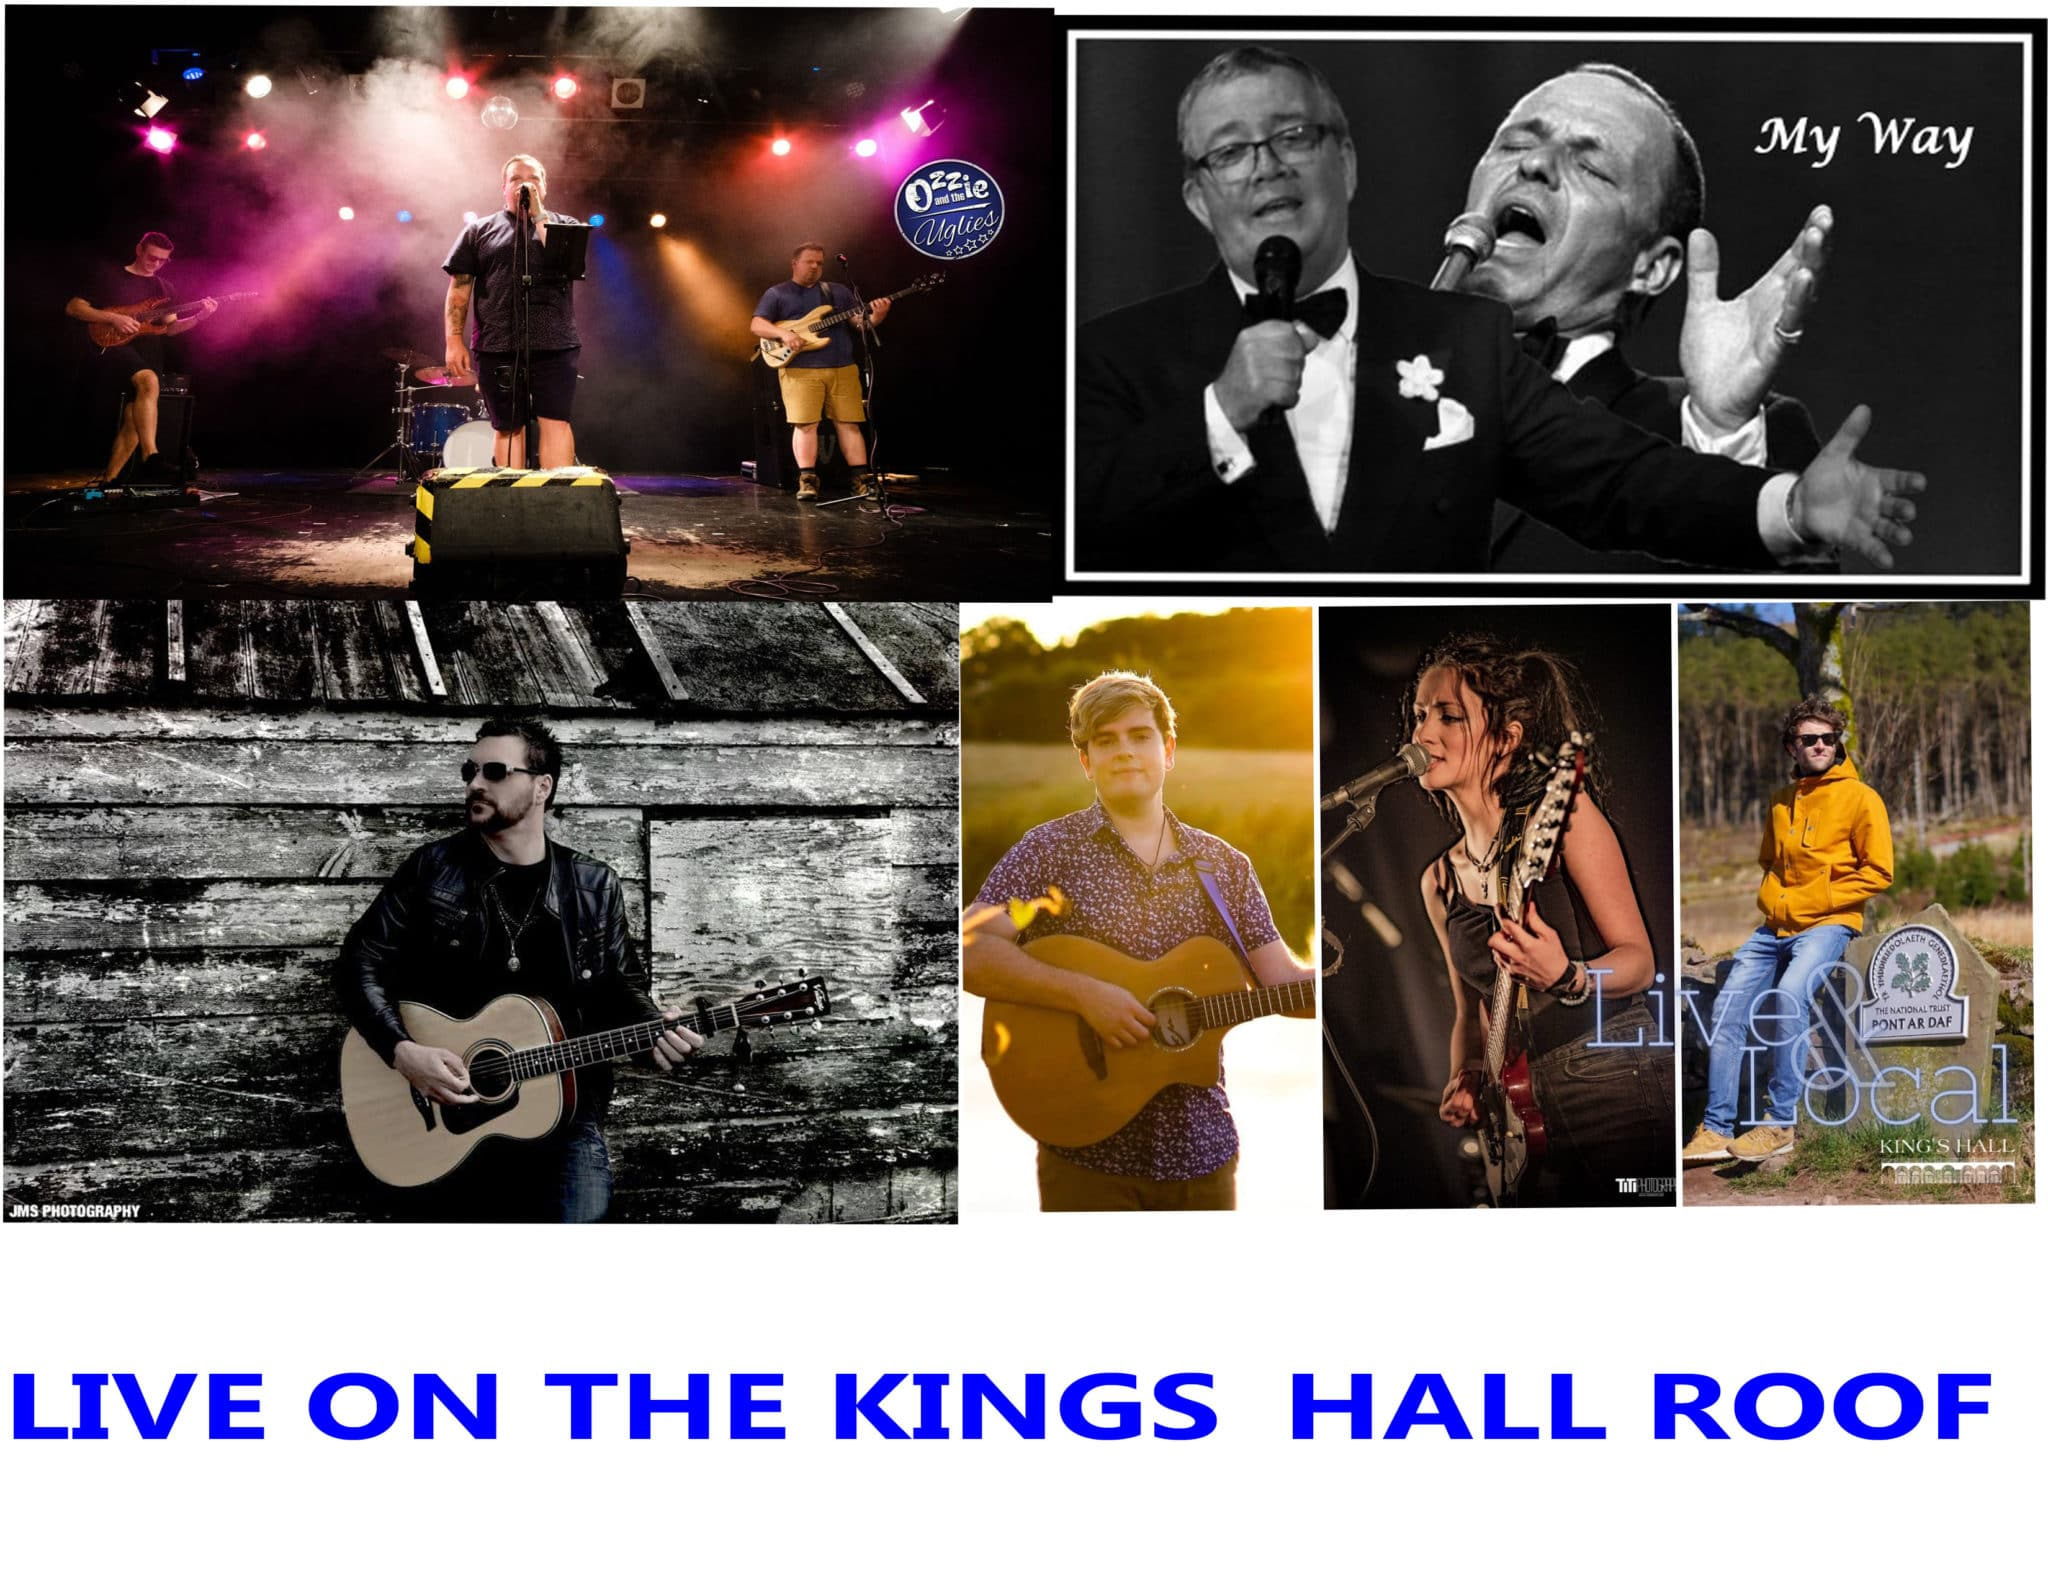 Live Music on the Kings Hall Roof